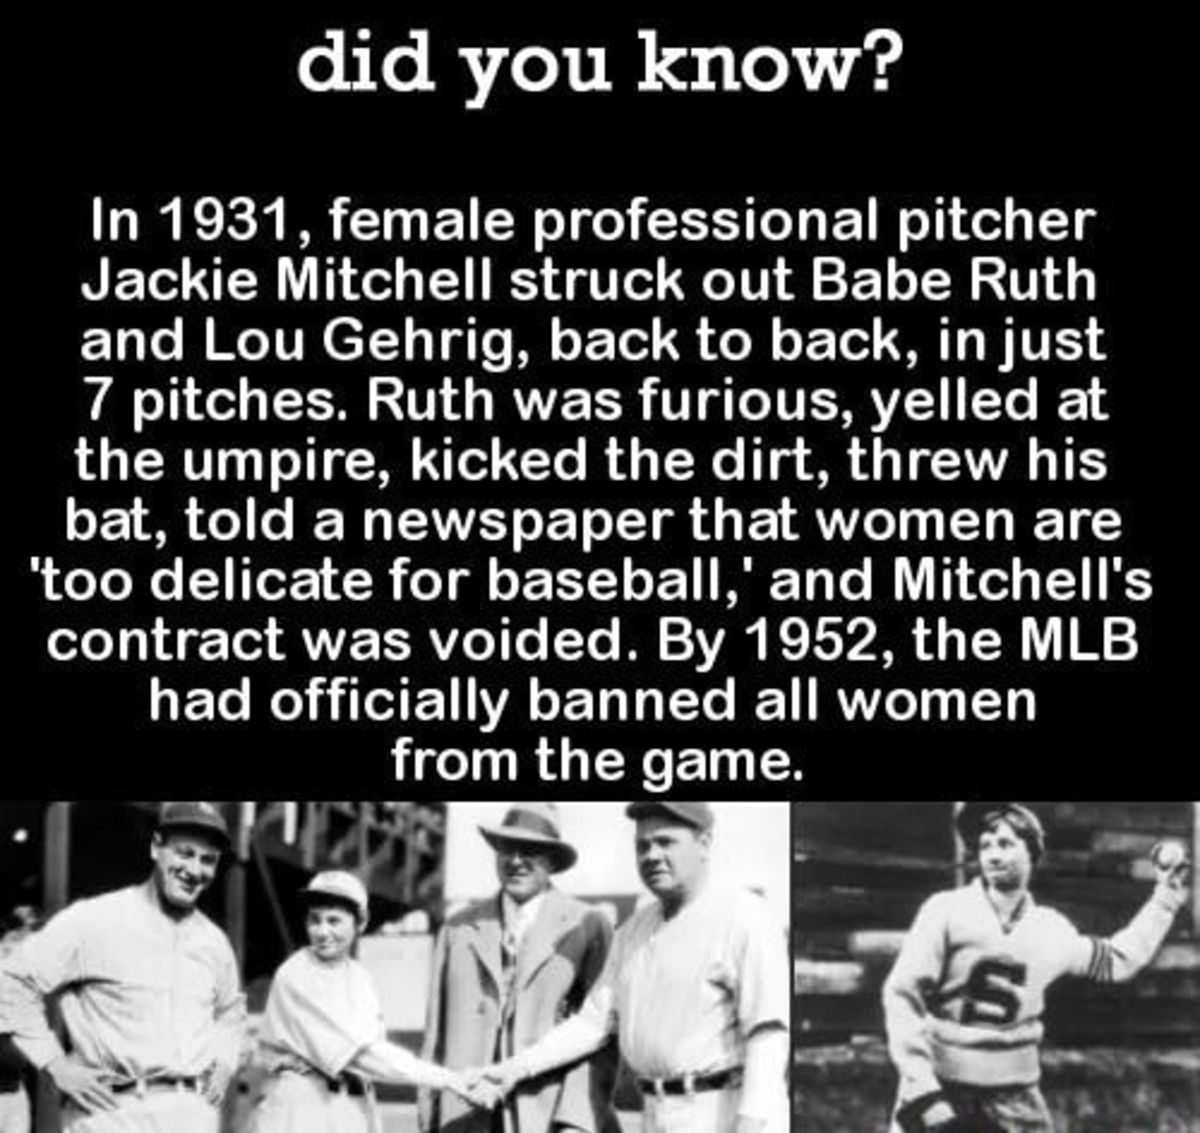 lady-pitcher-strikes-out-babe-ruth-and-lou-gehrig